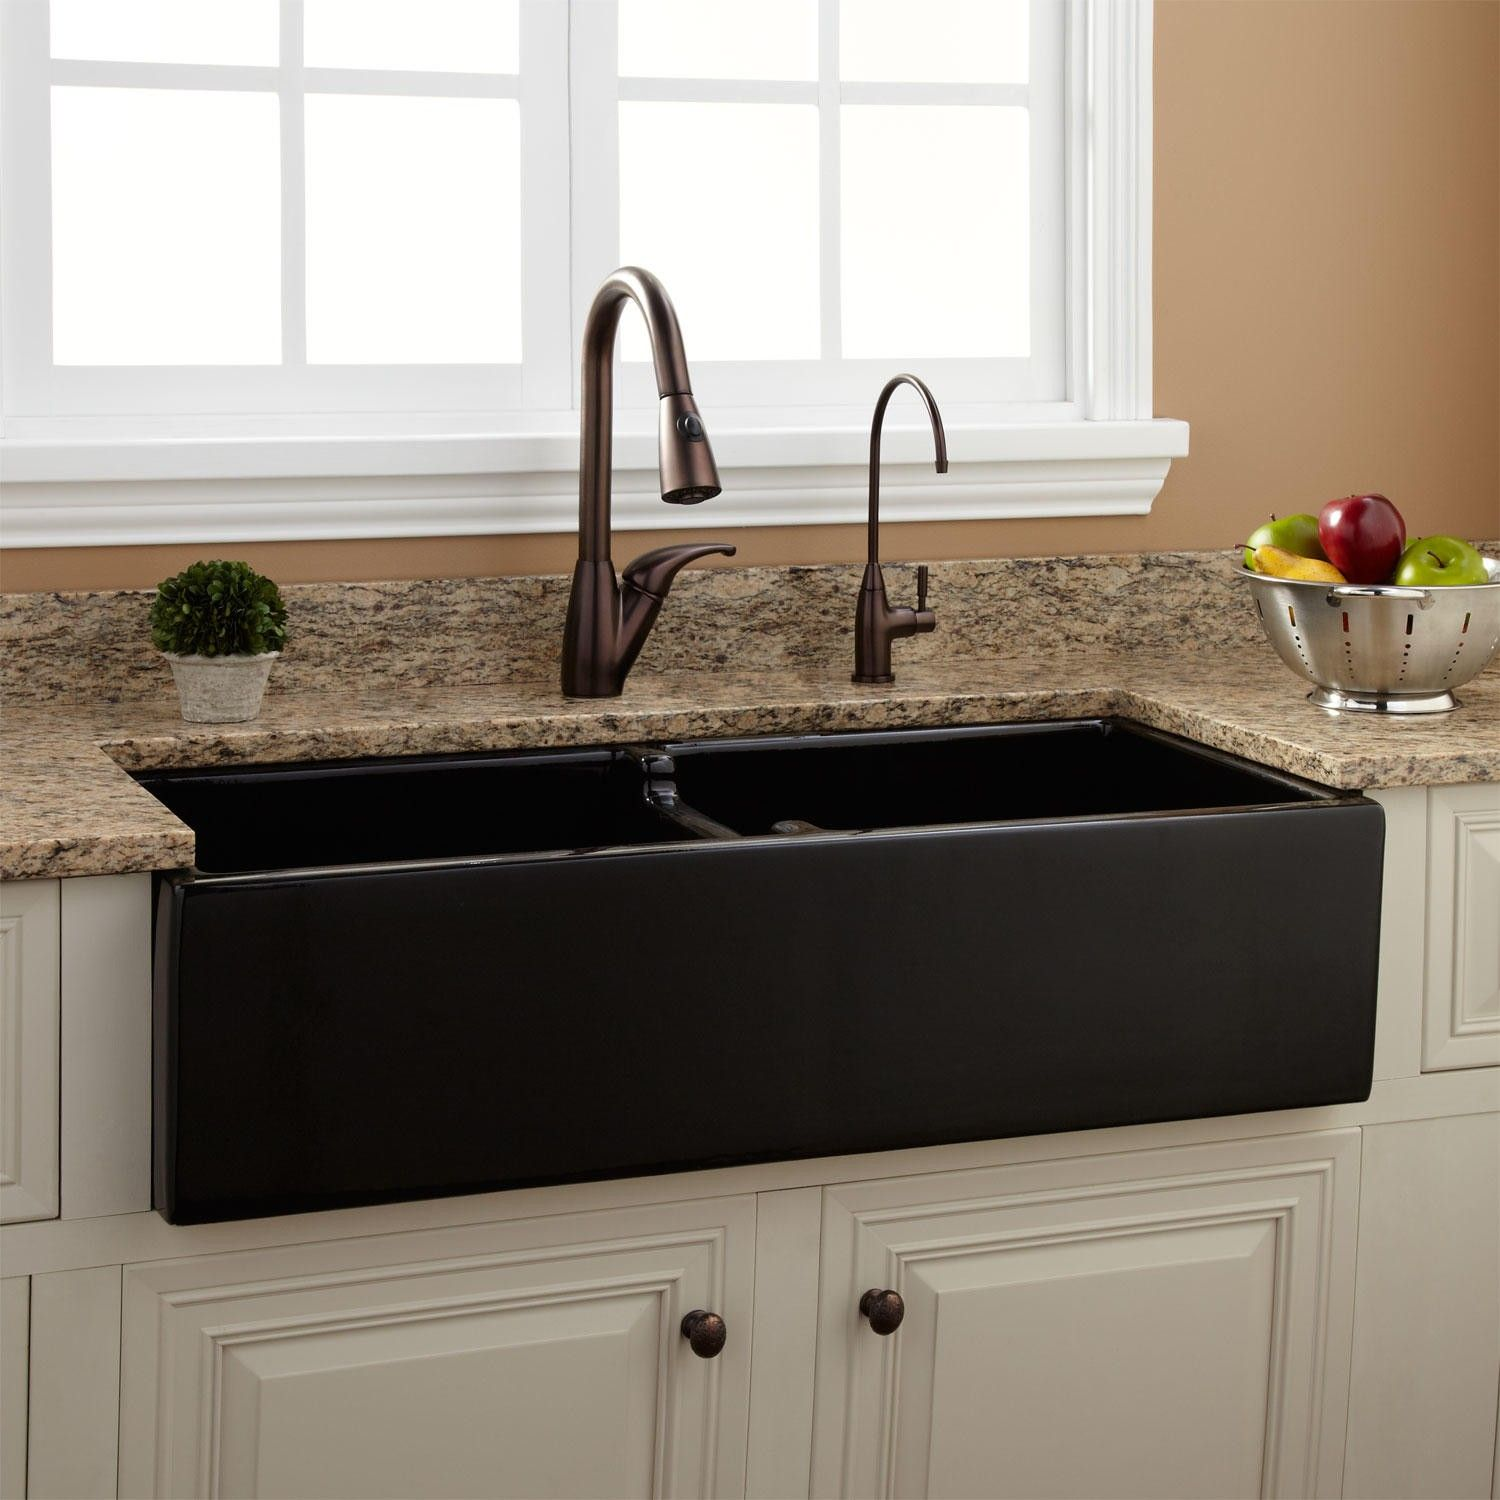 Pin By Kerrie Johnson Roetcisoender On Kitchen Kitchen Sink Remodel Fireclay Farmhouse Sink Farmhouse Sink Kitchen